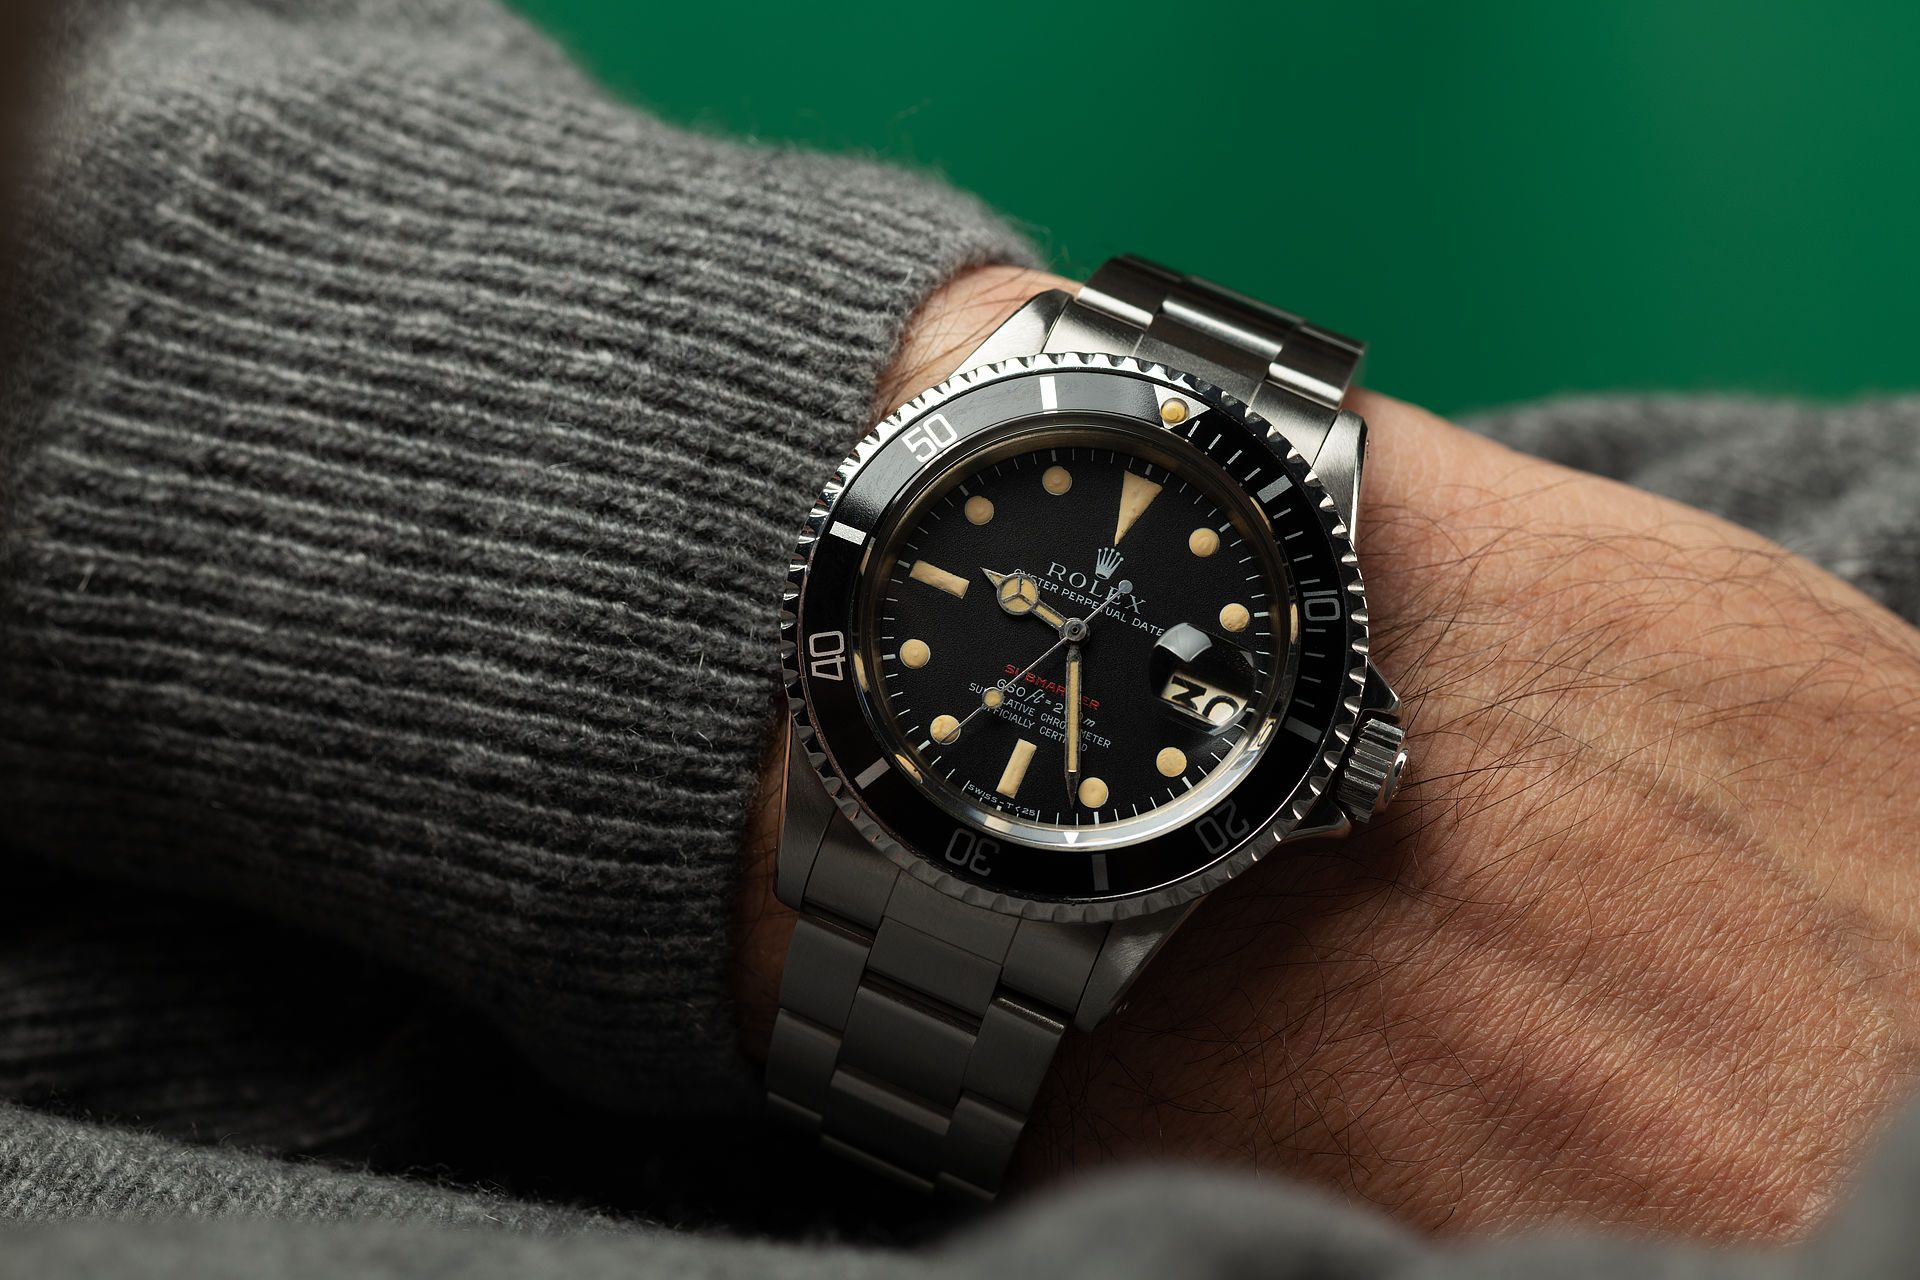 ref 1680 | 'Feet First' Red Writing | Rolex Submariner Date